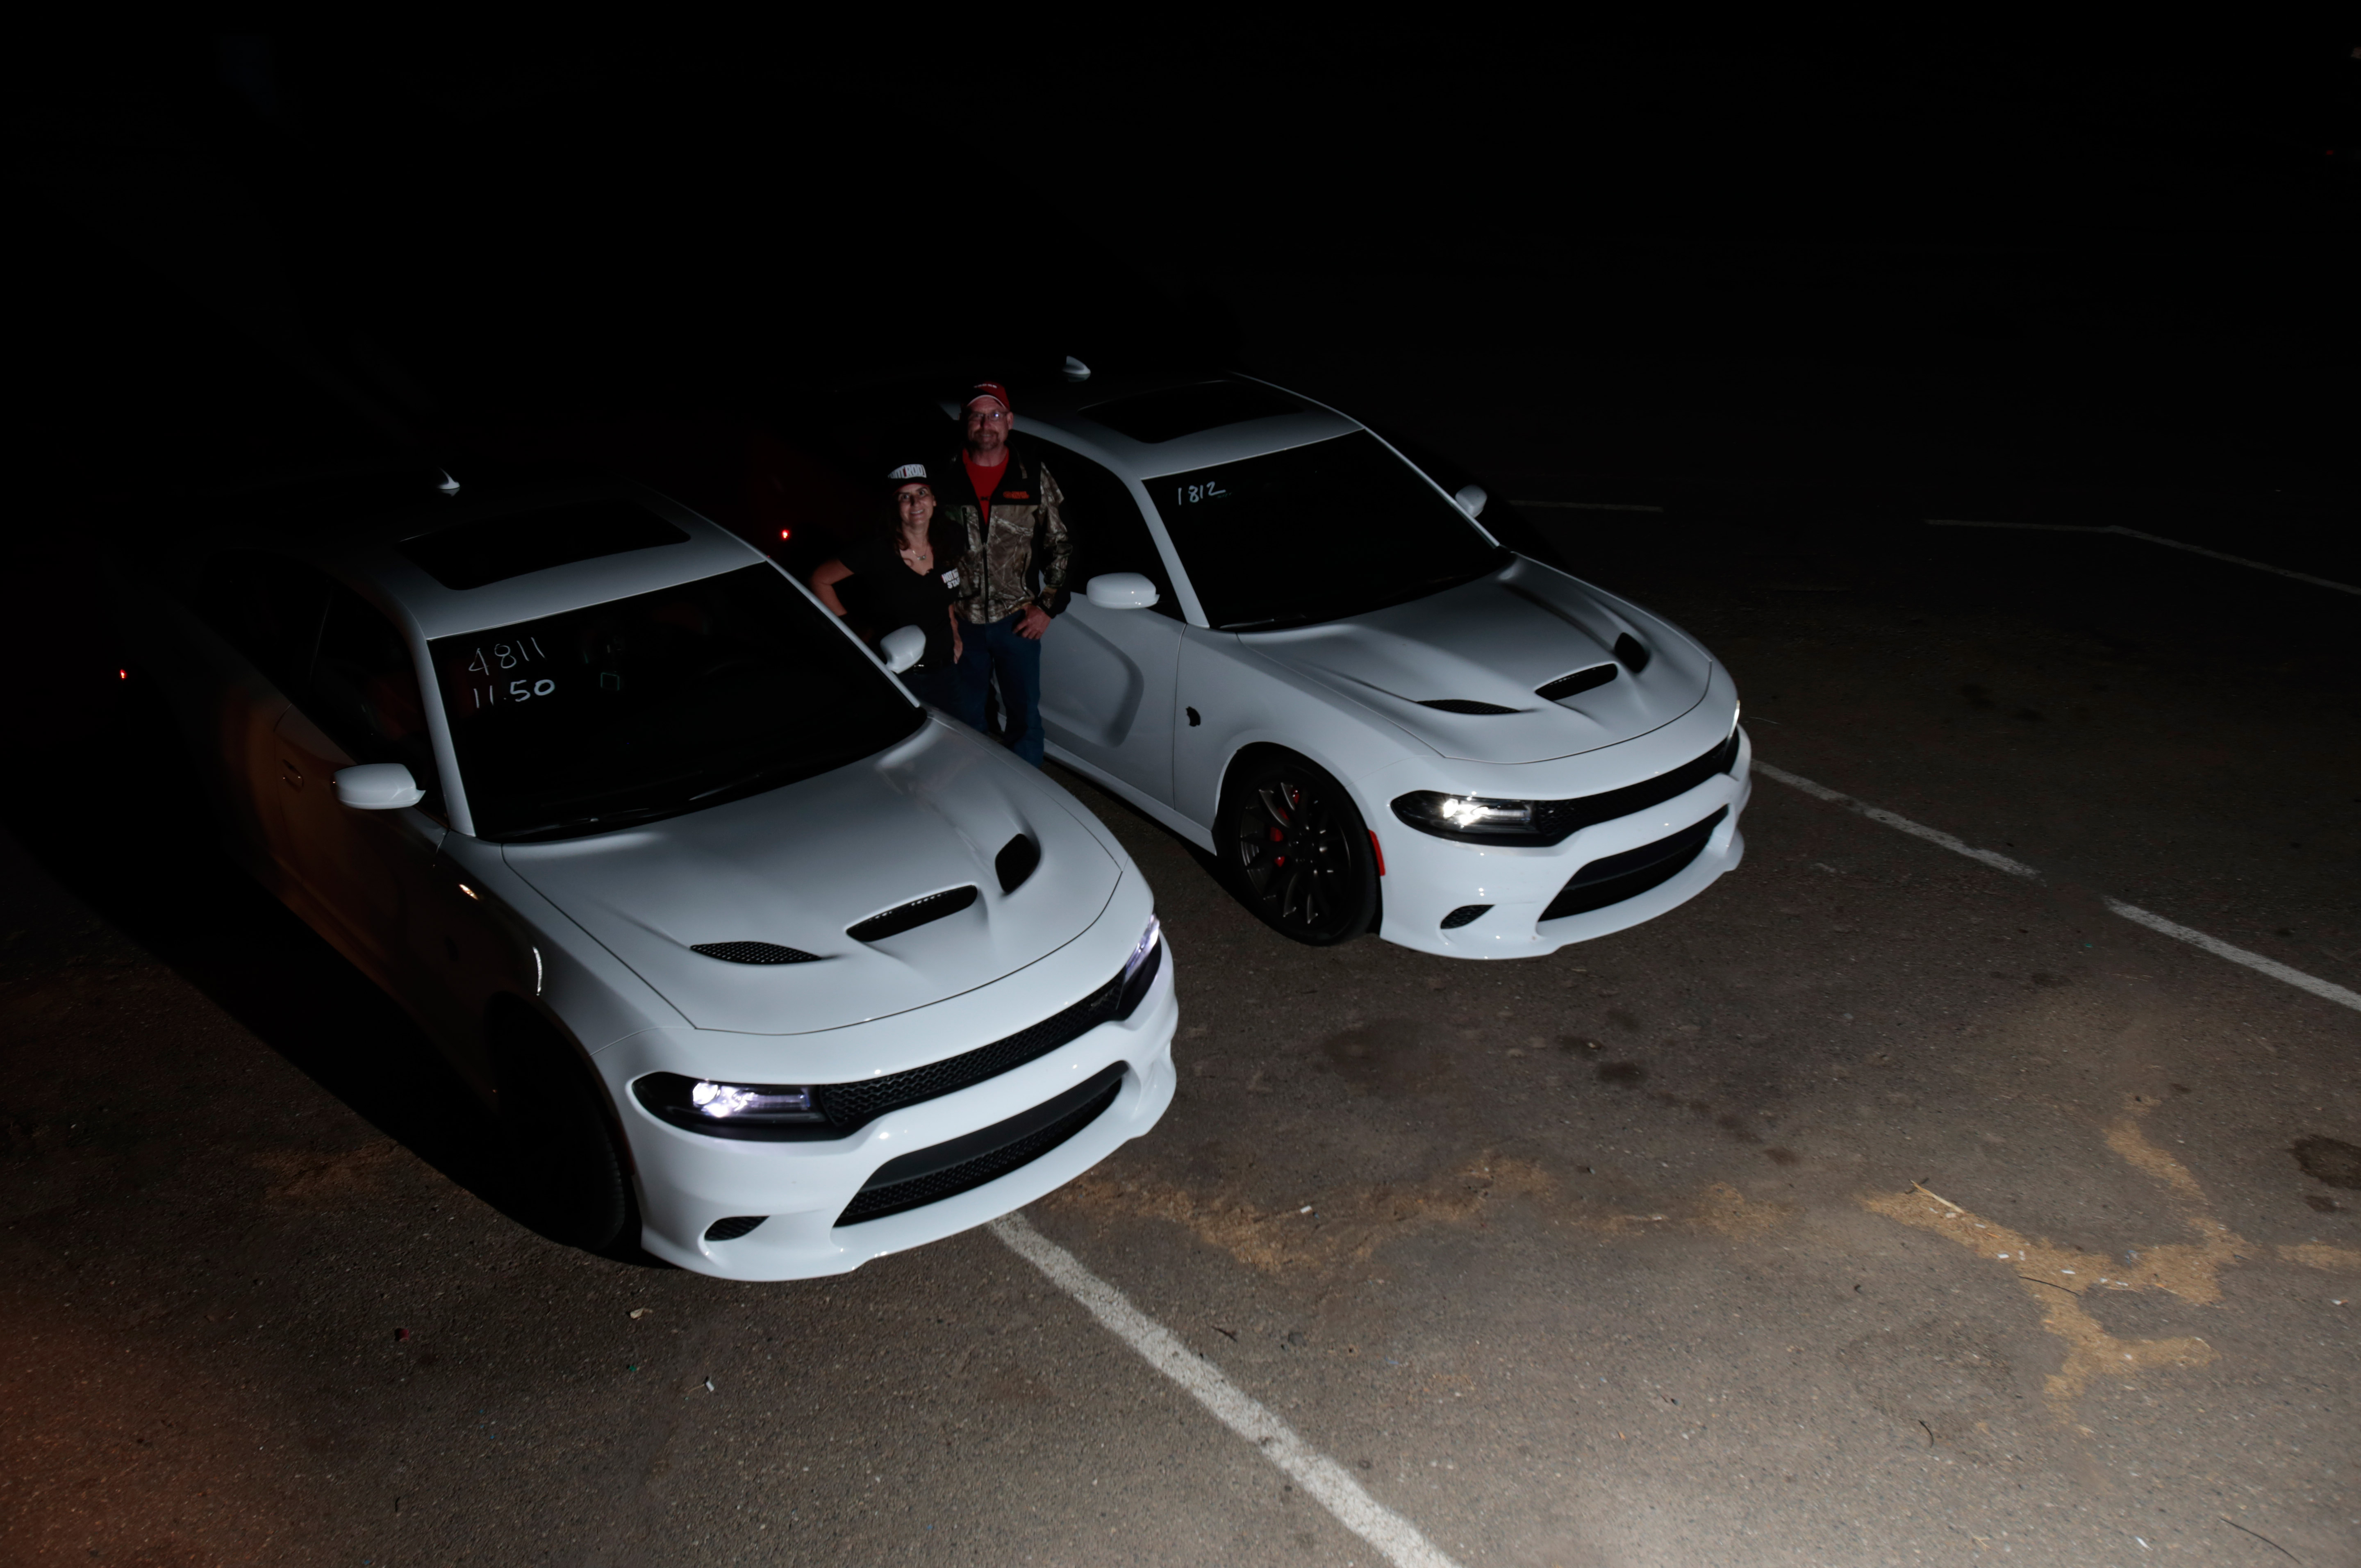 Twinsies! Duane Roots had just purchased a Hellcat Charger. He heard we were at the track and came out for Hellcat bonding time.